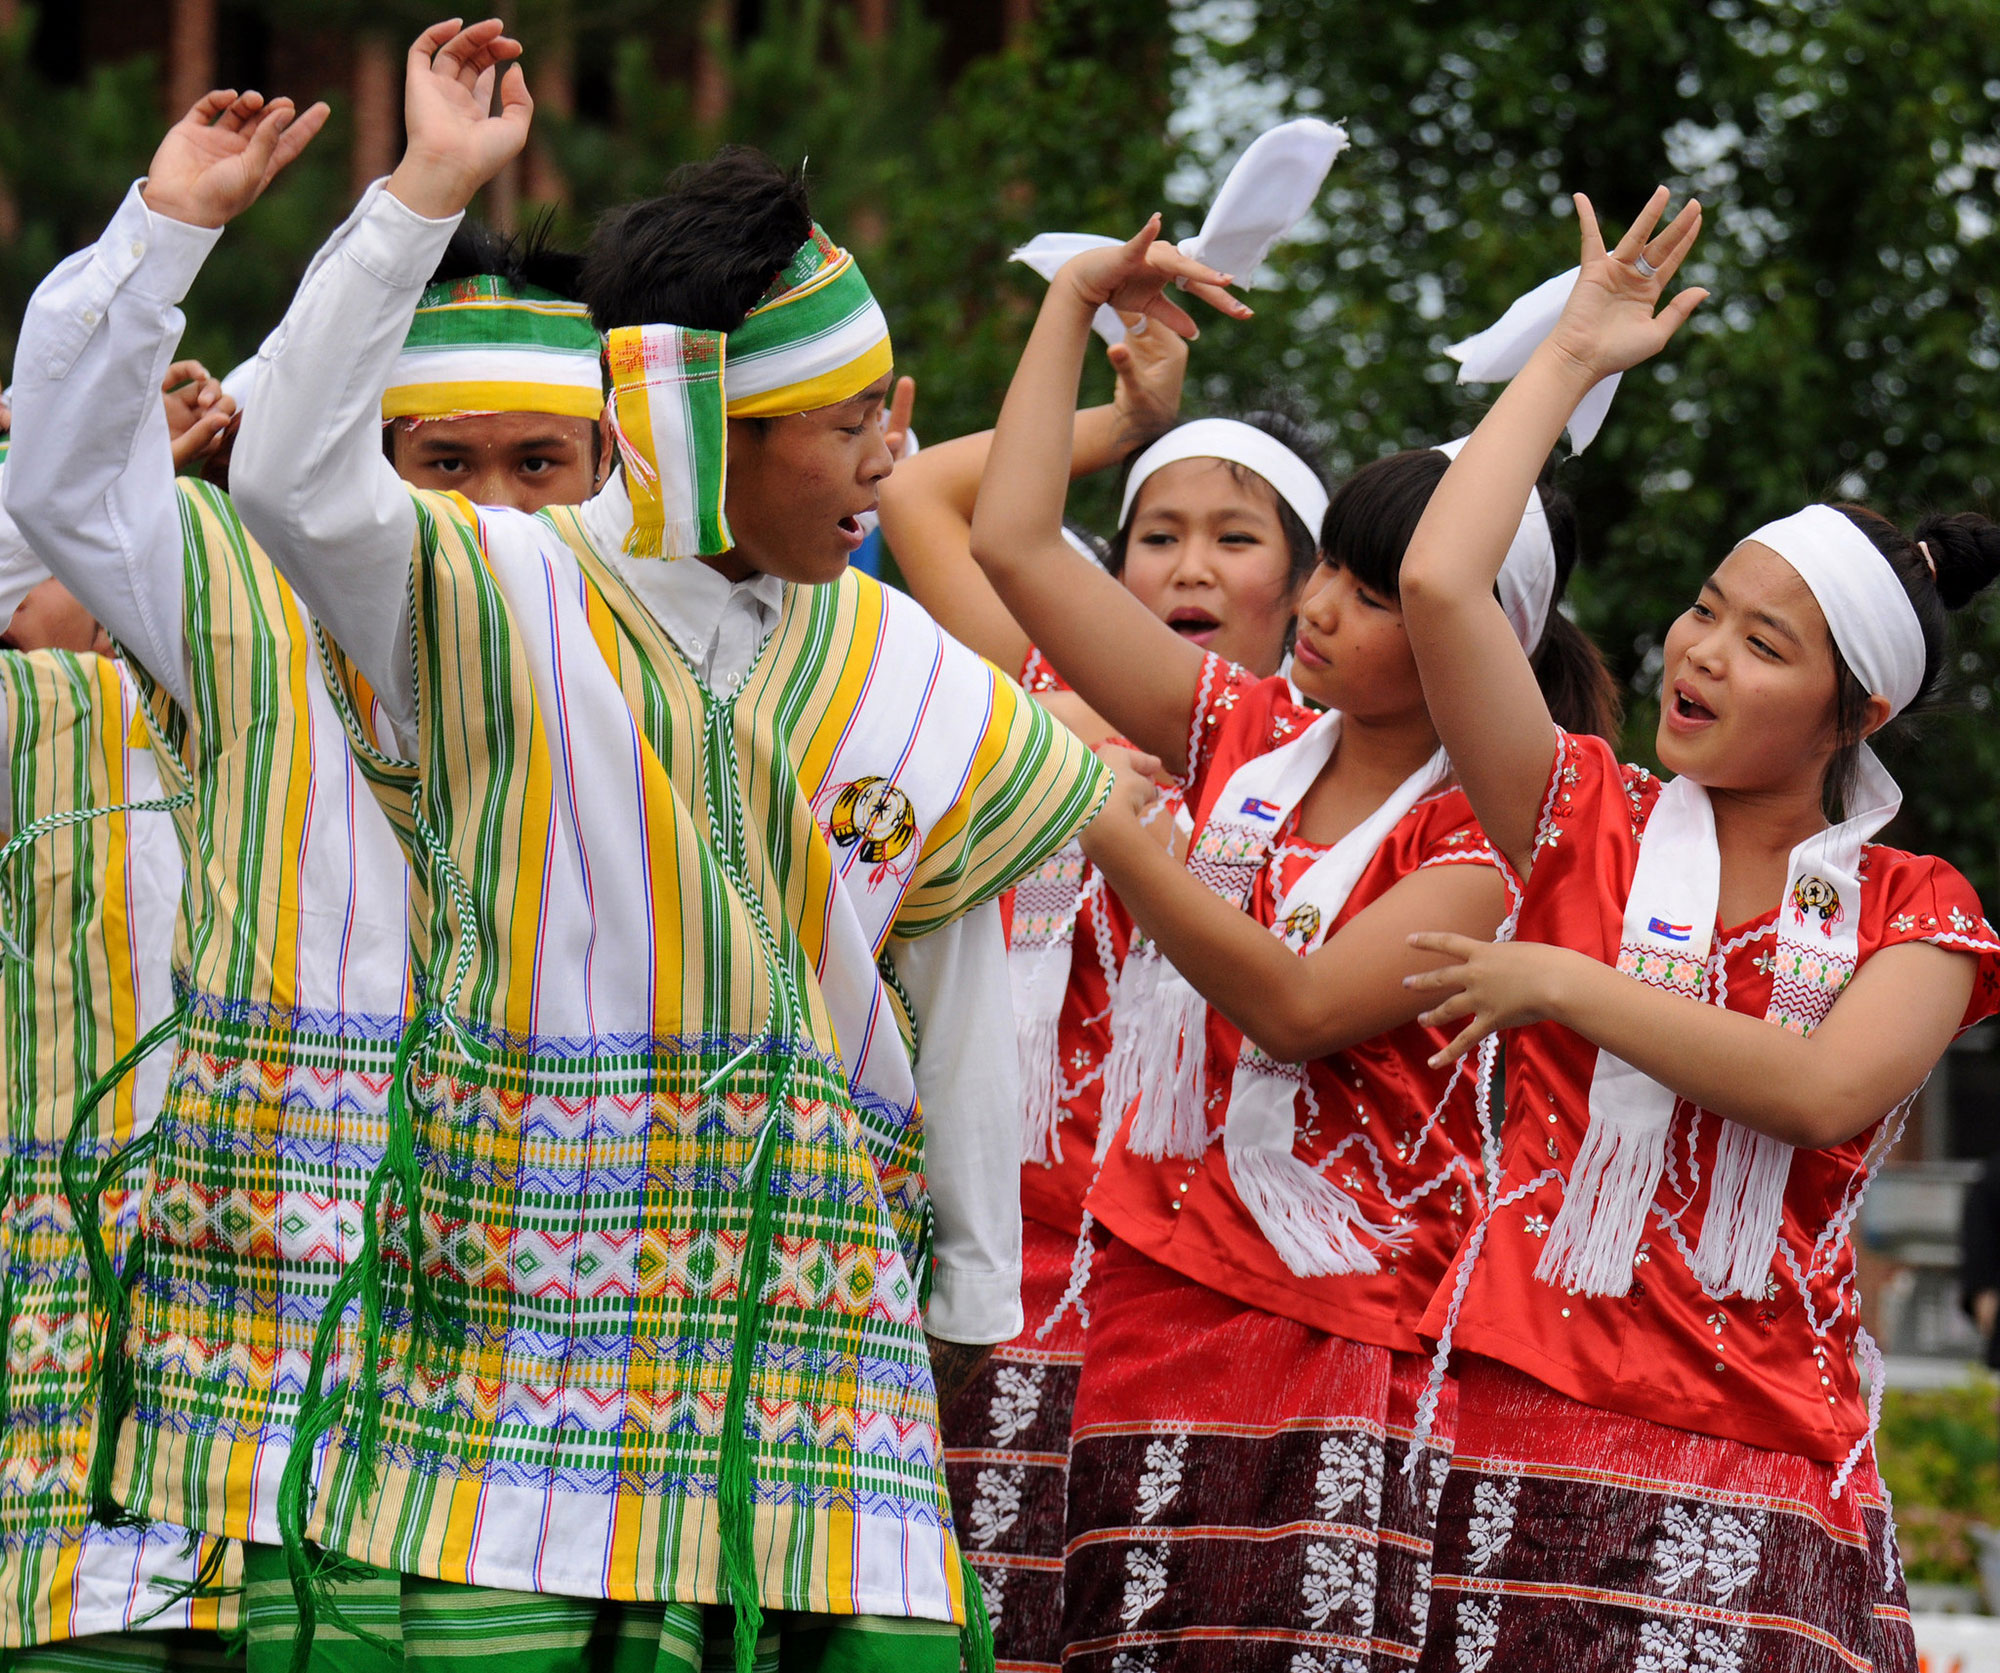 Refugee dancers outside in traditional outfits.